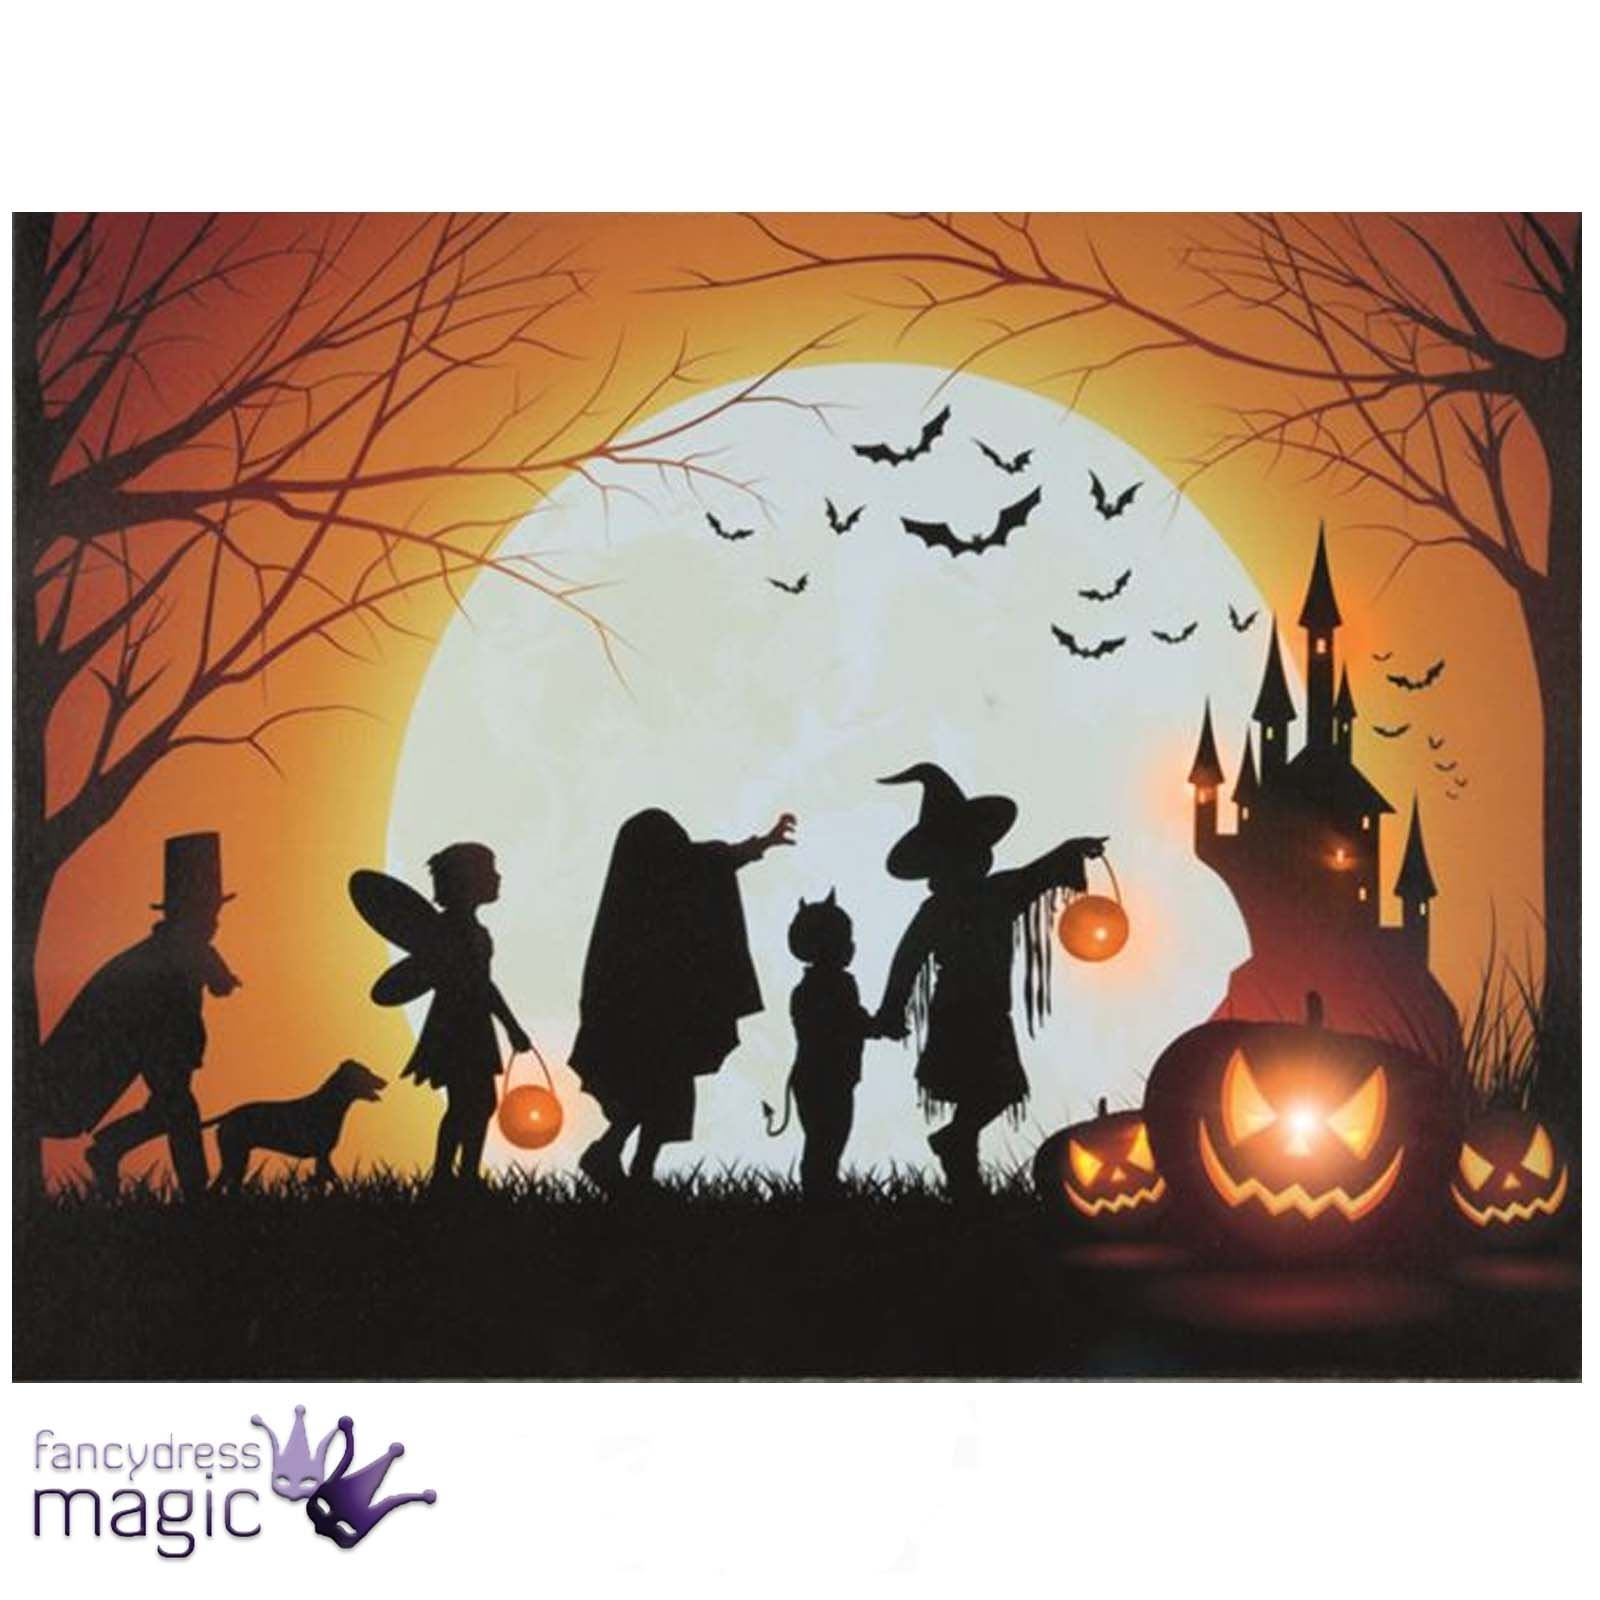 Led Light Up Canvas Halloween Spooky Scene Picture Wall Home Inside Recent Halloween Led Canvas Wall Art (View 9 of 15)